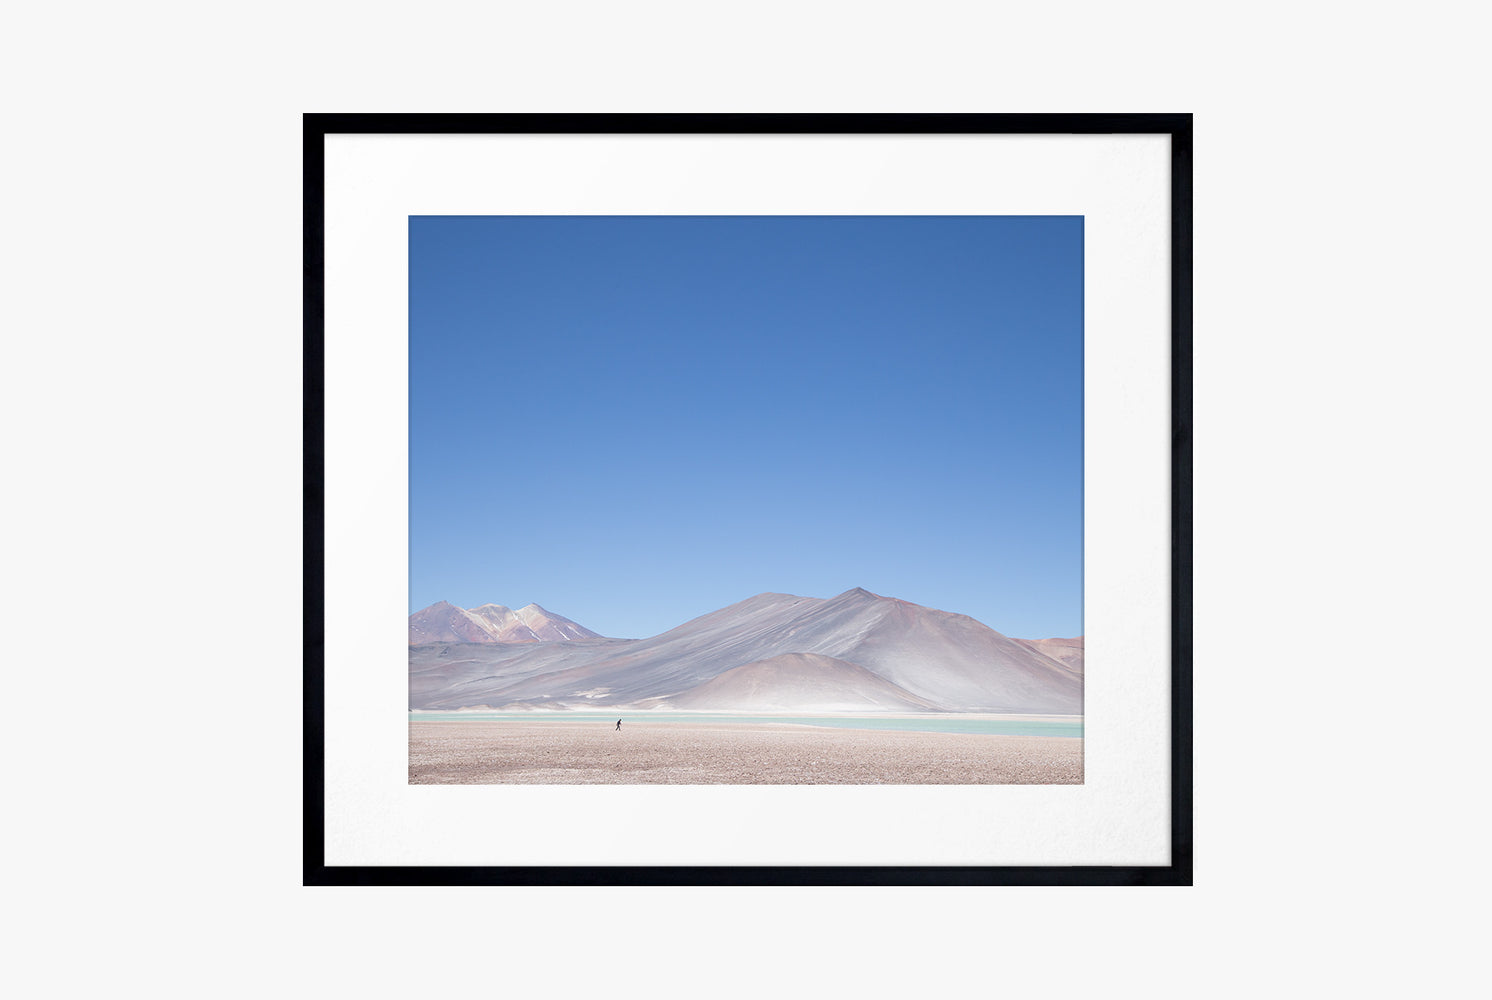 The Atacama Print - framed photo of a desert with mountains and a blue sky in the background